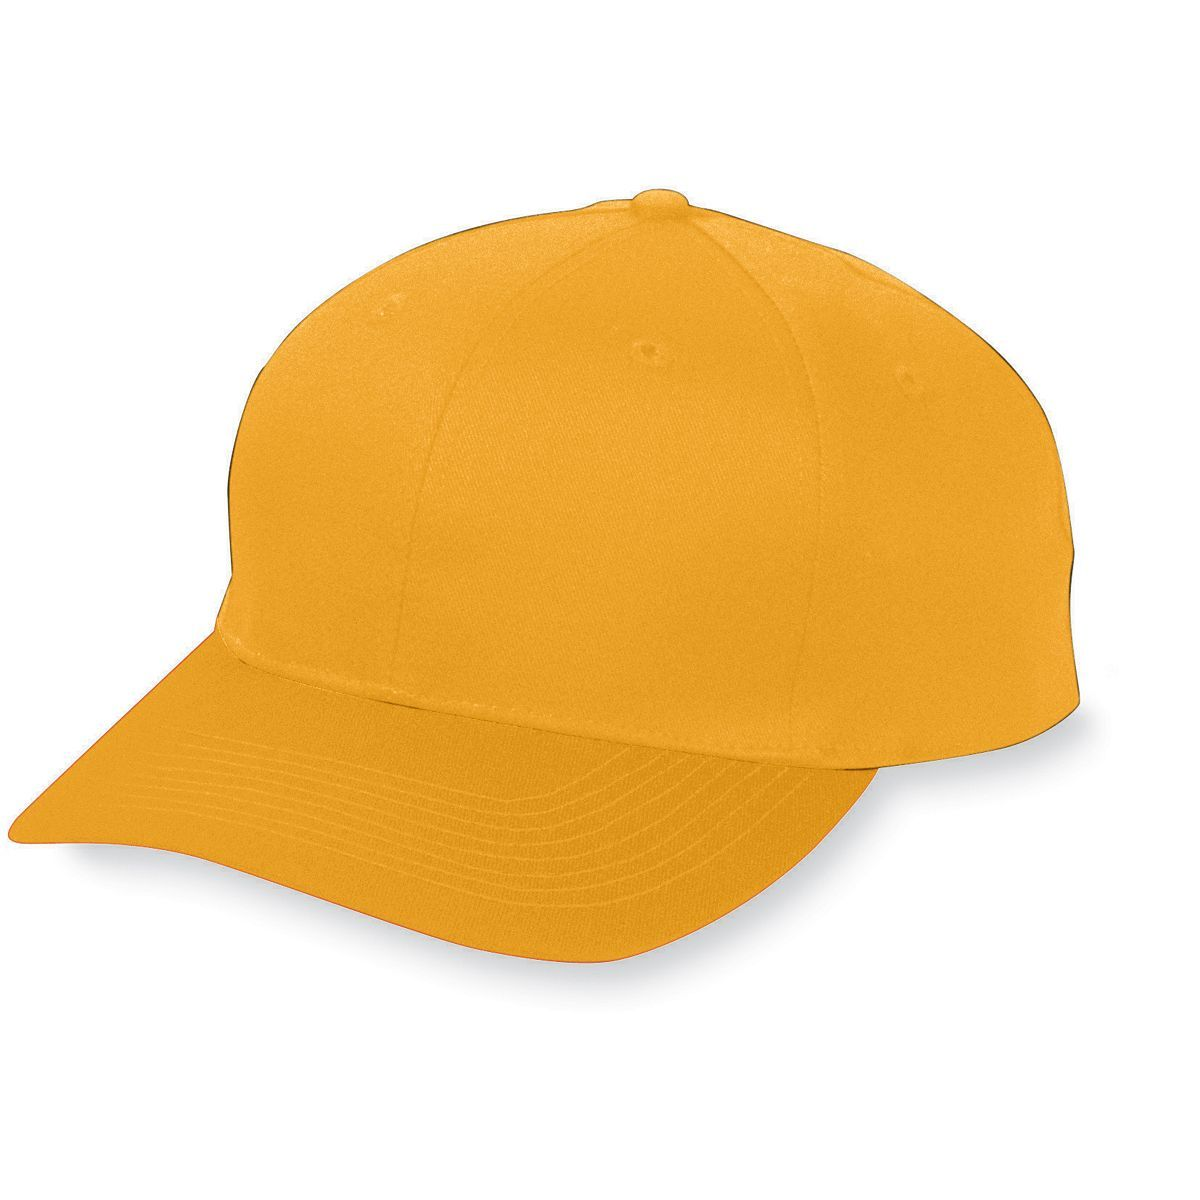 Six-Panel Cotton Twill Low-Profile Cap - GOLD